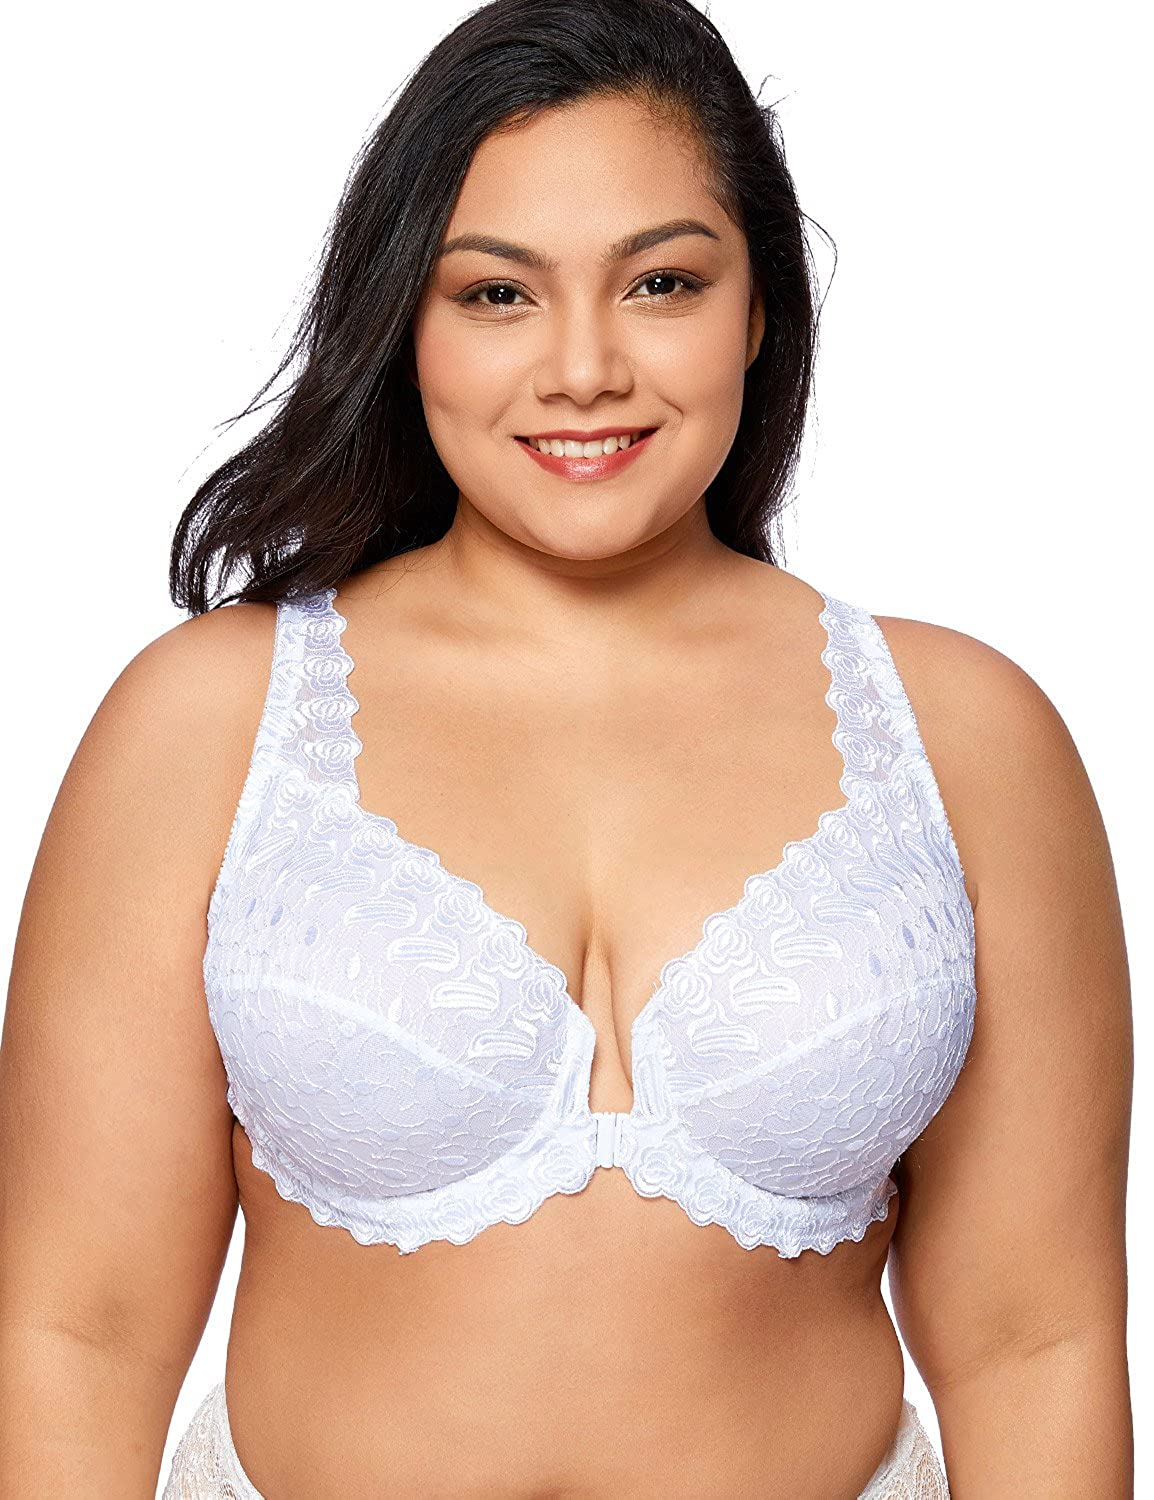 63a6f33eb247d DELIMIRA Women s Plus Size Support Unlined Embroidered Lace Front Close Underwired  Bra at Amazon Women s Clothing store